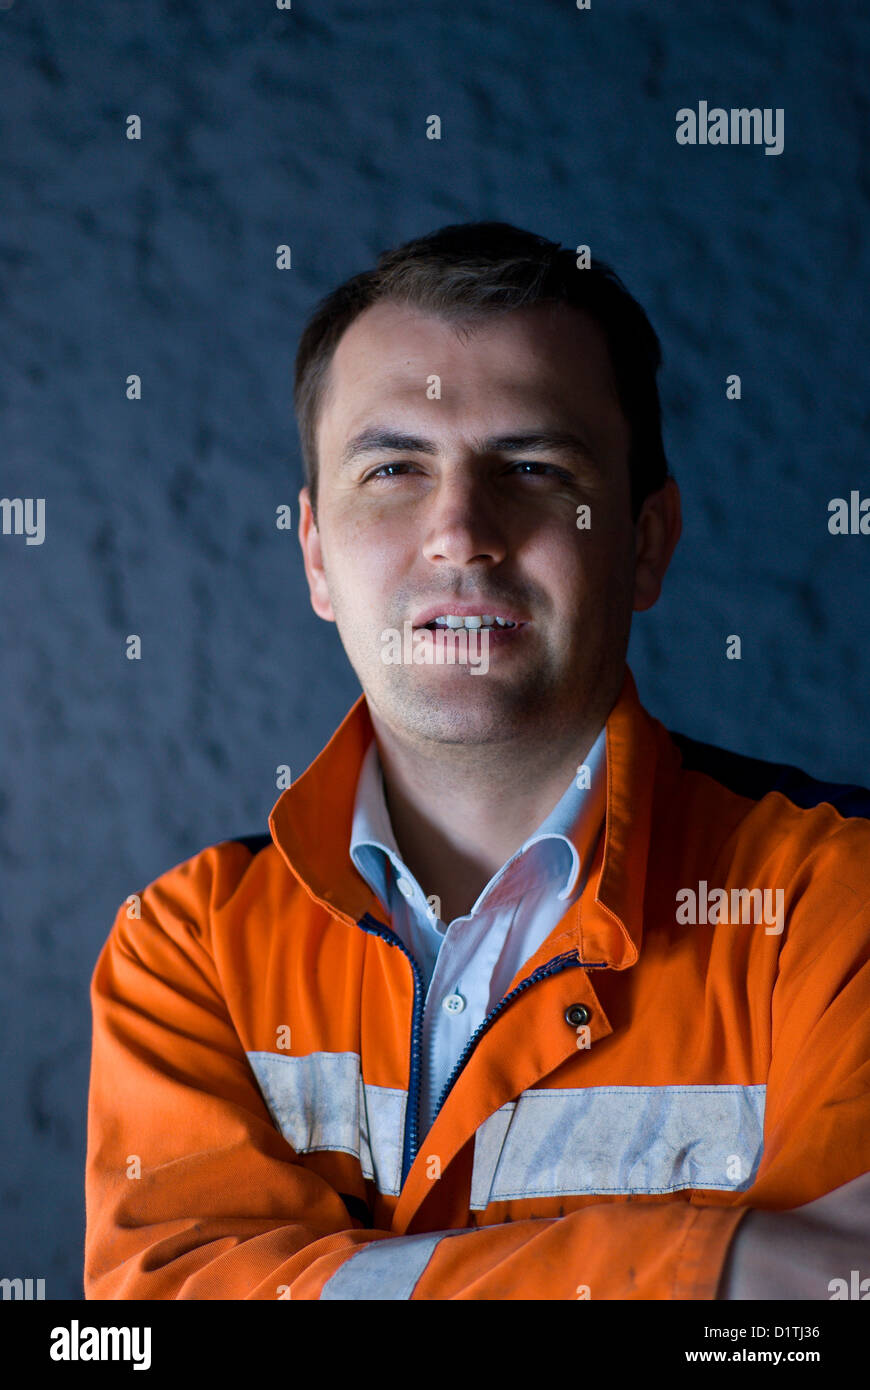 Tired worker hardly keeping his eyes open - Stock Image